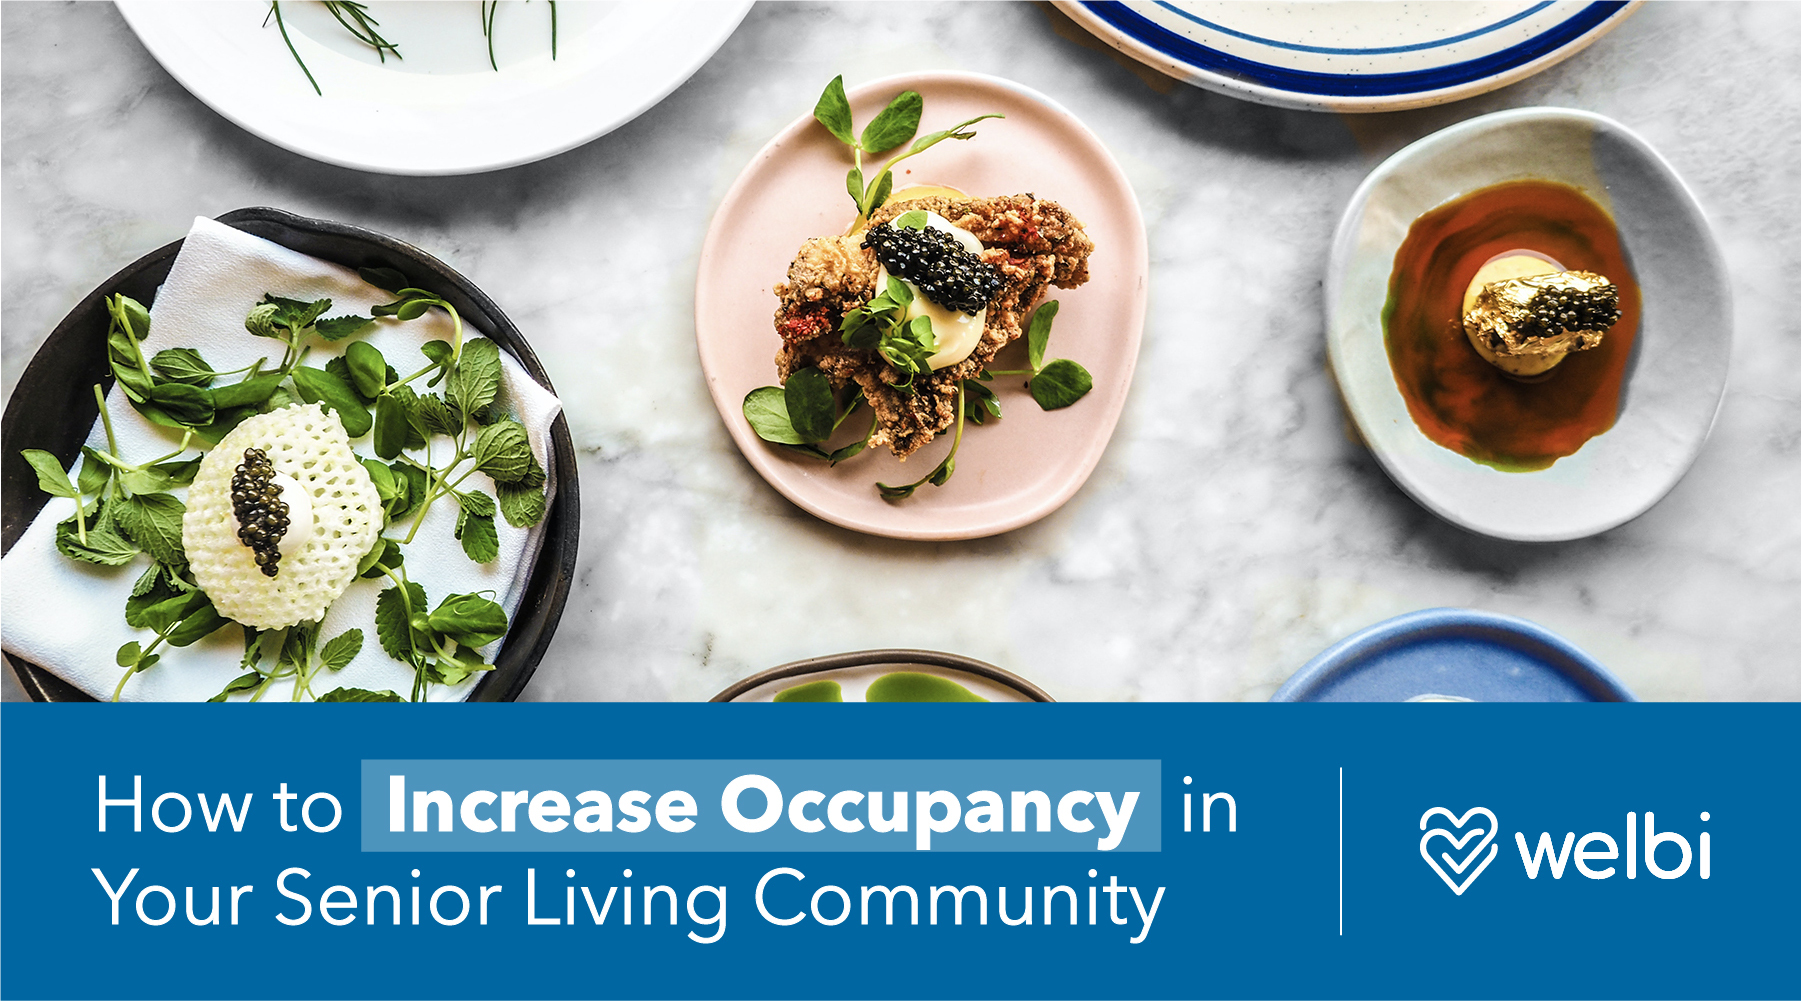 How to Increase Occupancy in Your Senior Living Community